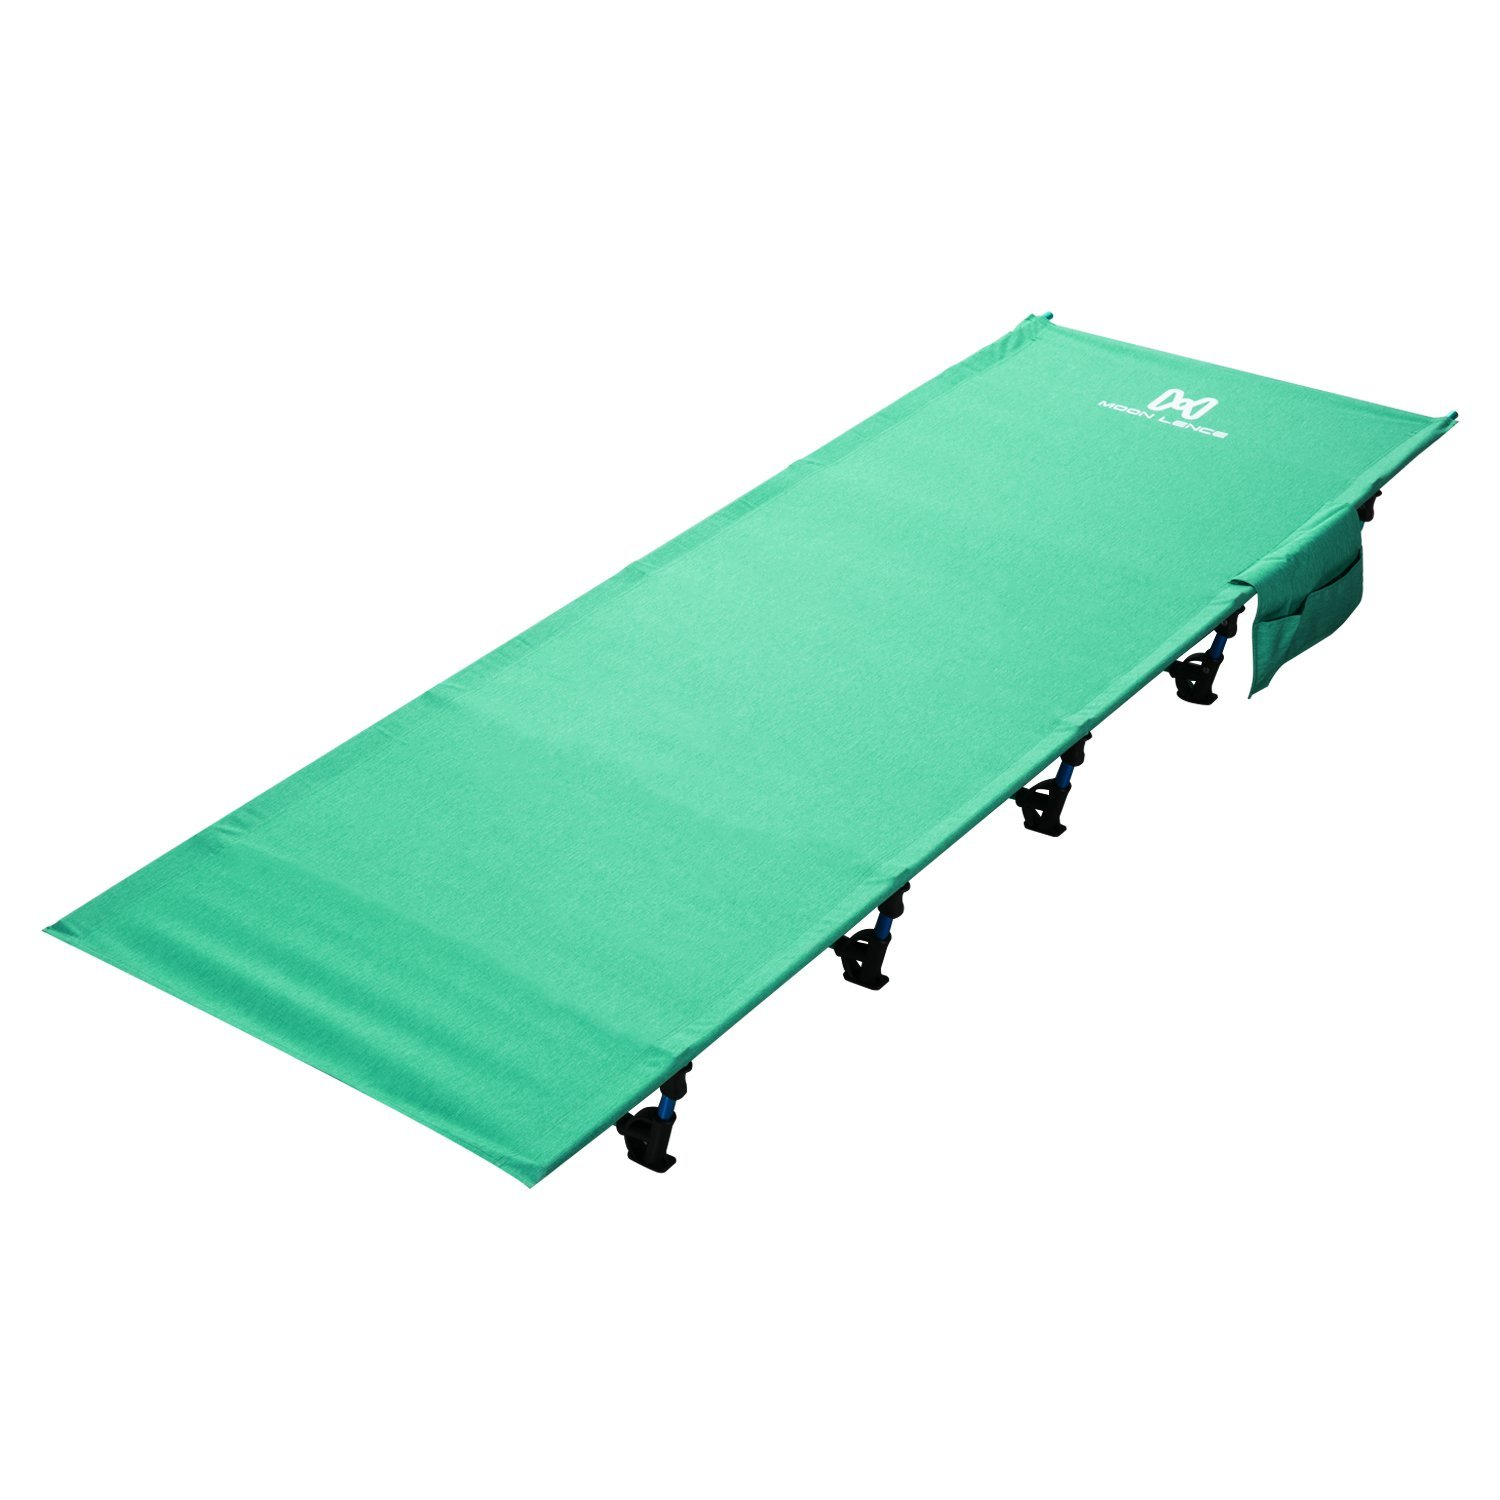 Moon Lence Camping Cot for Adults Lightweight Portable Camping Bed Compact Folding Cot with Breathable Waterproof Bed Surface,Perfect for Base Camp,Hiking and Hunting